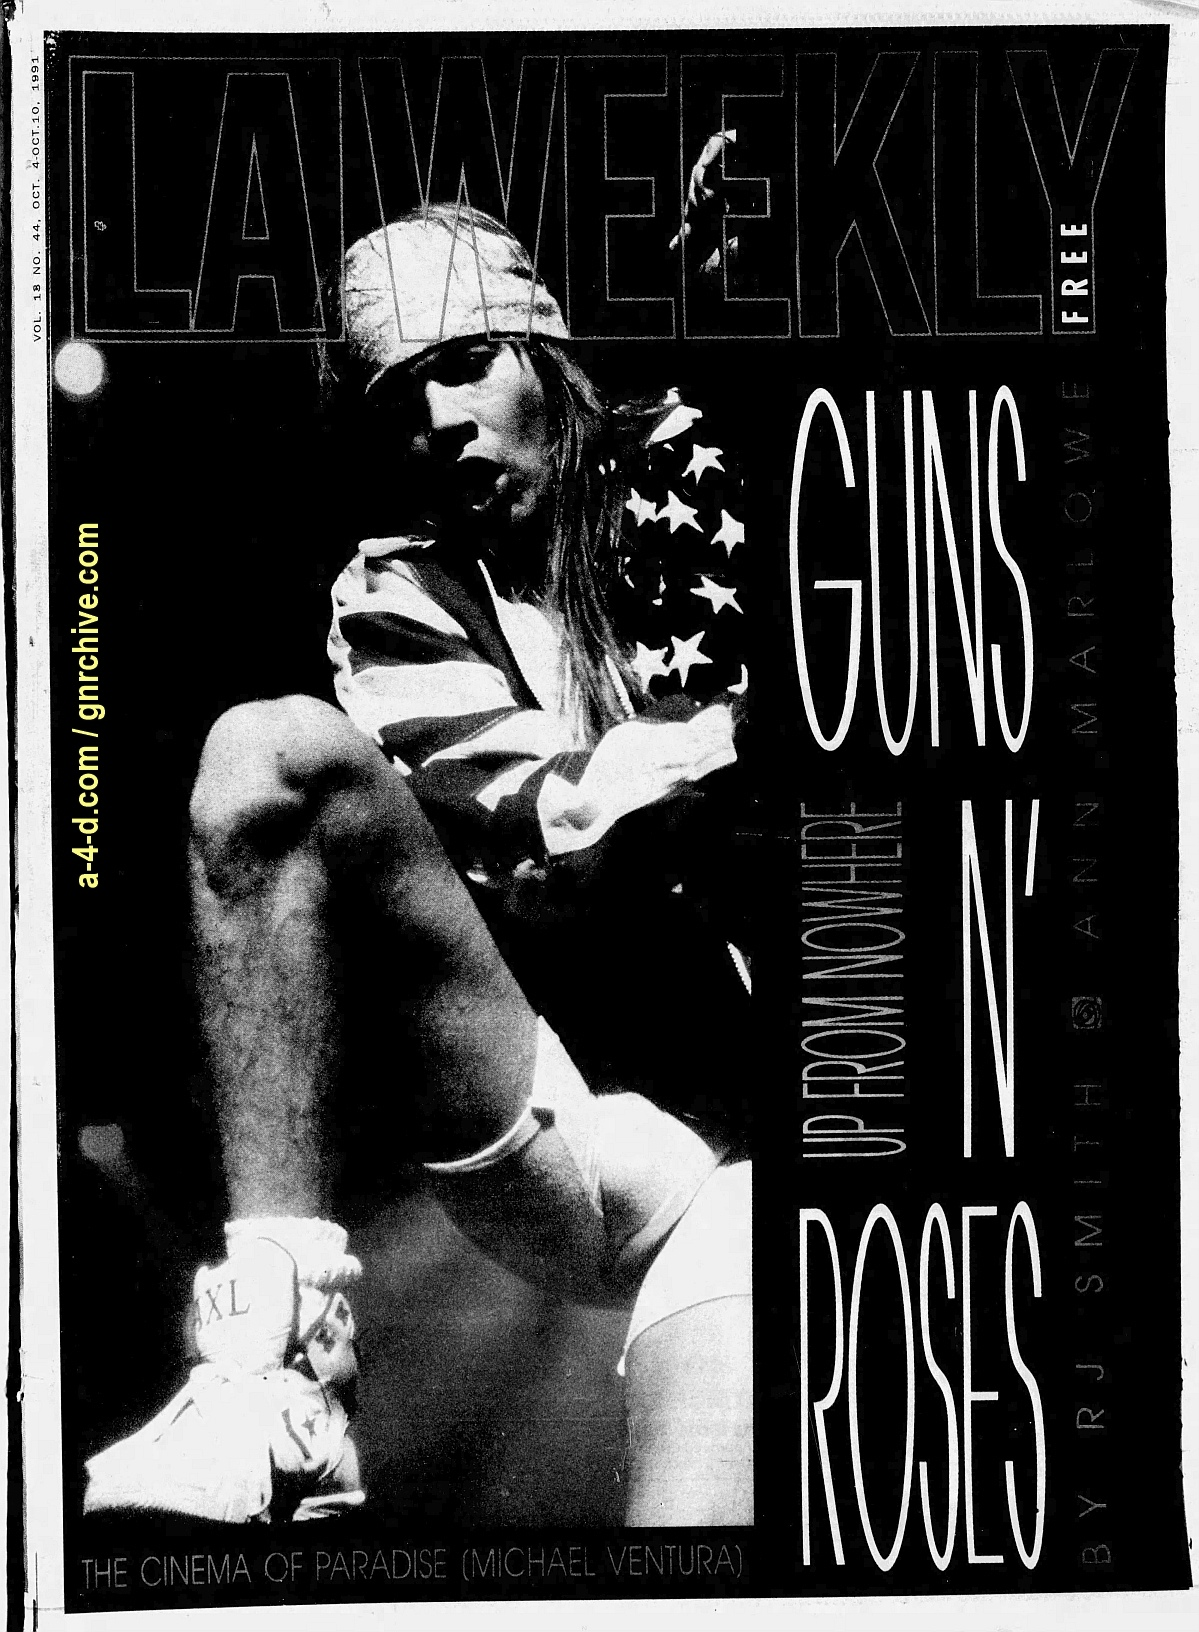 1991.10.04 - L.A. Weekly - Guns N' Roses: Up From Nowhere 1991_113